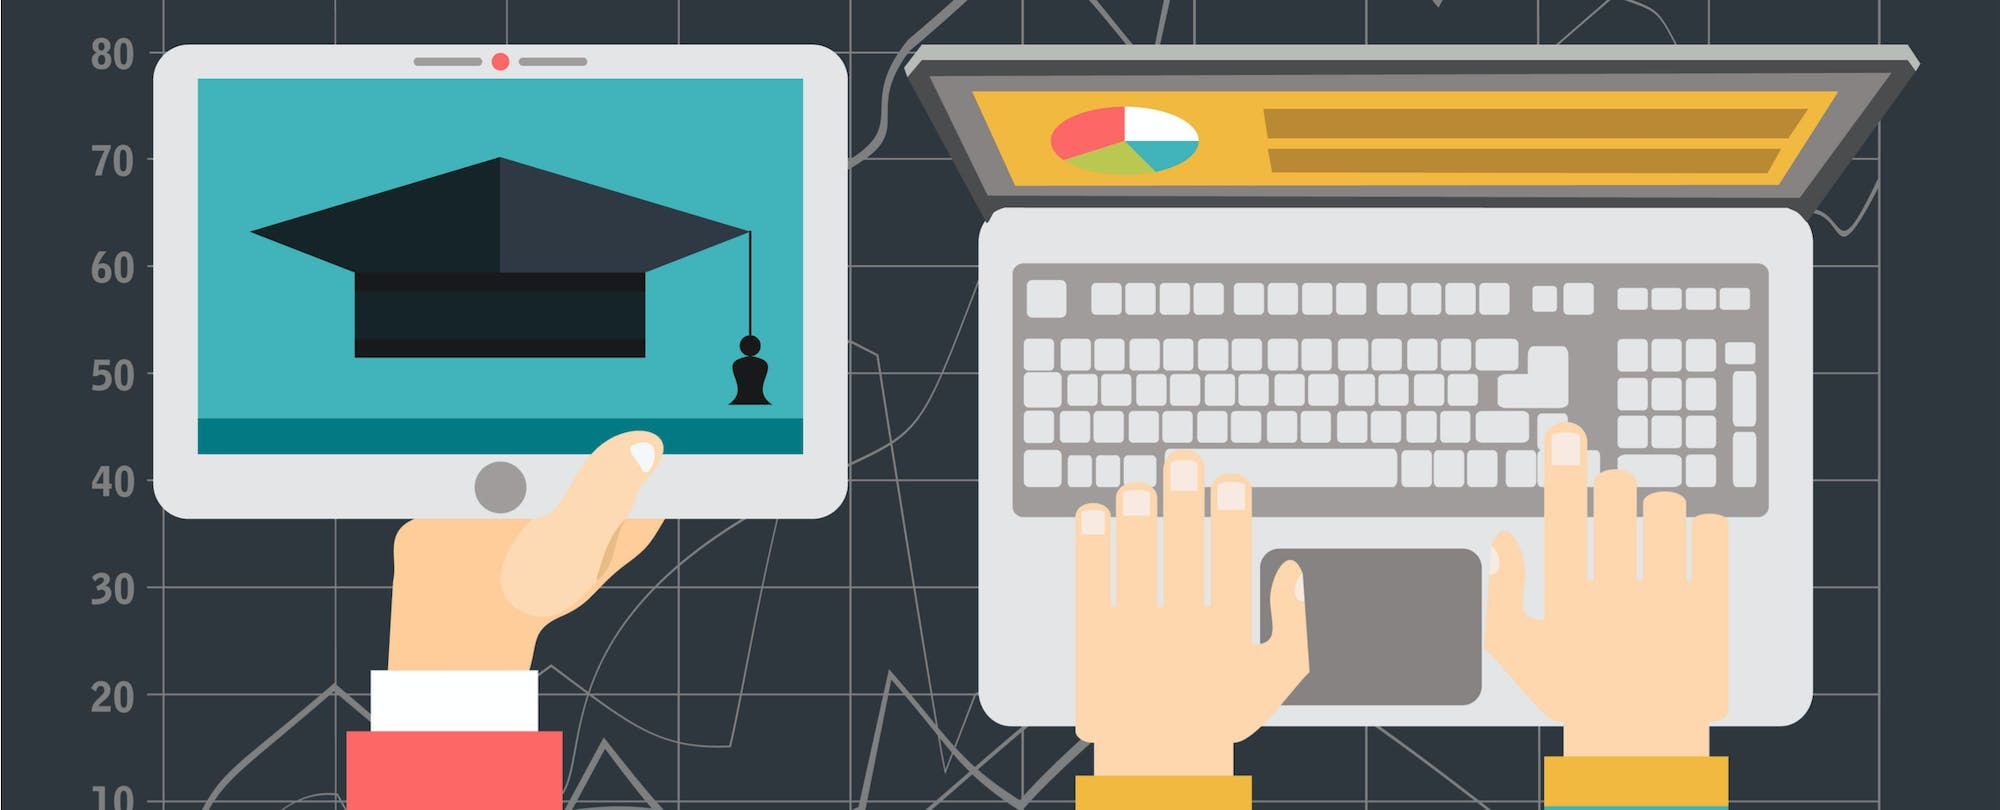 6 Tips for How to Build an Online College Degree from Scratch #DLNchat